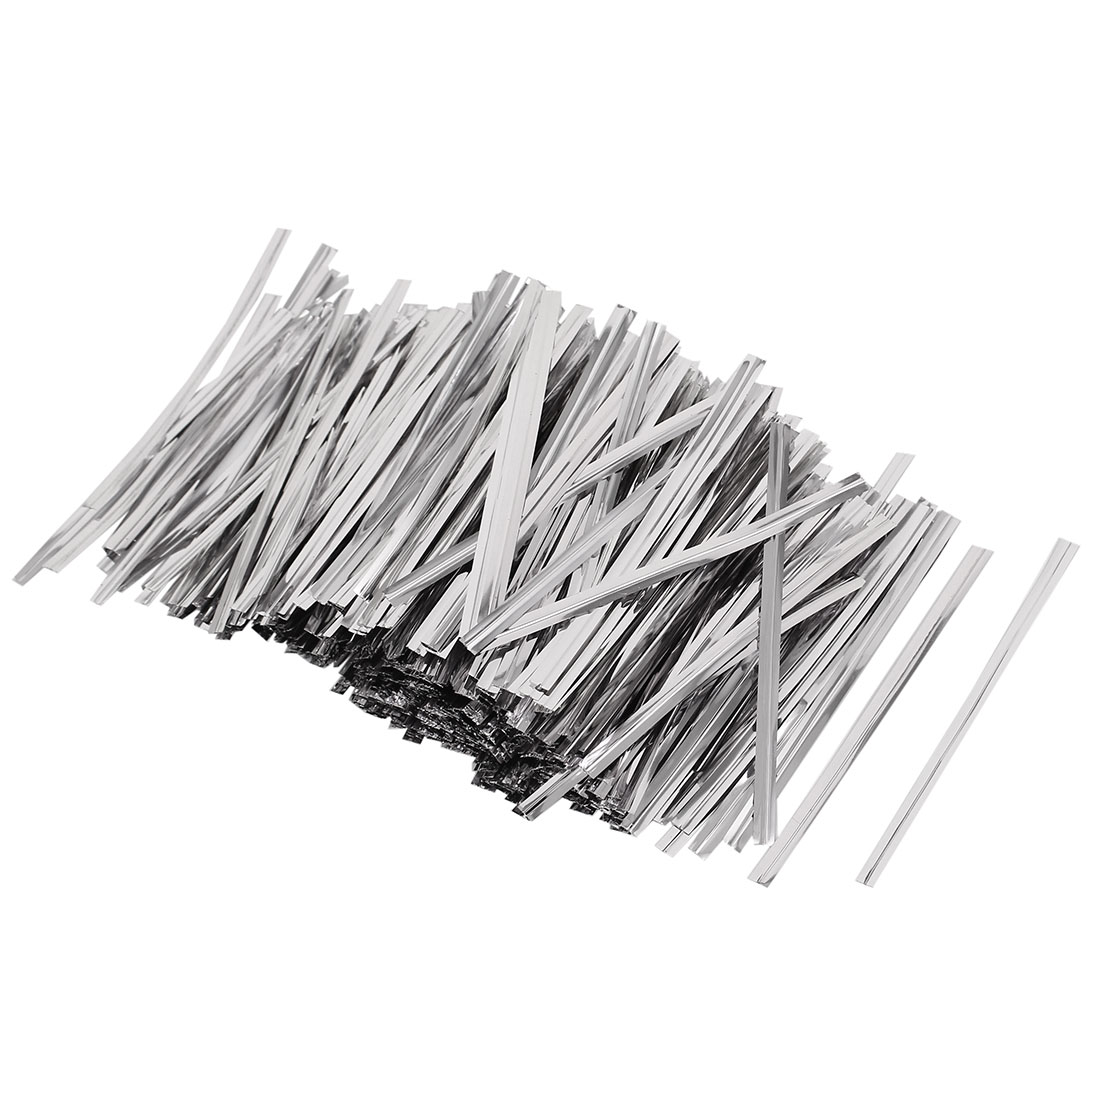 2400 Pcs 8cm Length Candy Bread Bags Packaging Twist Cable Tie